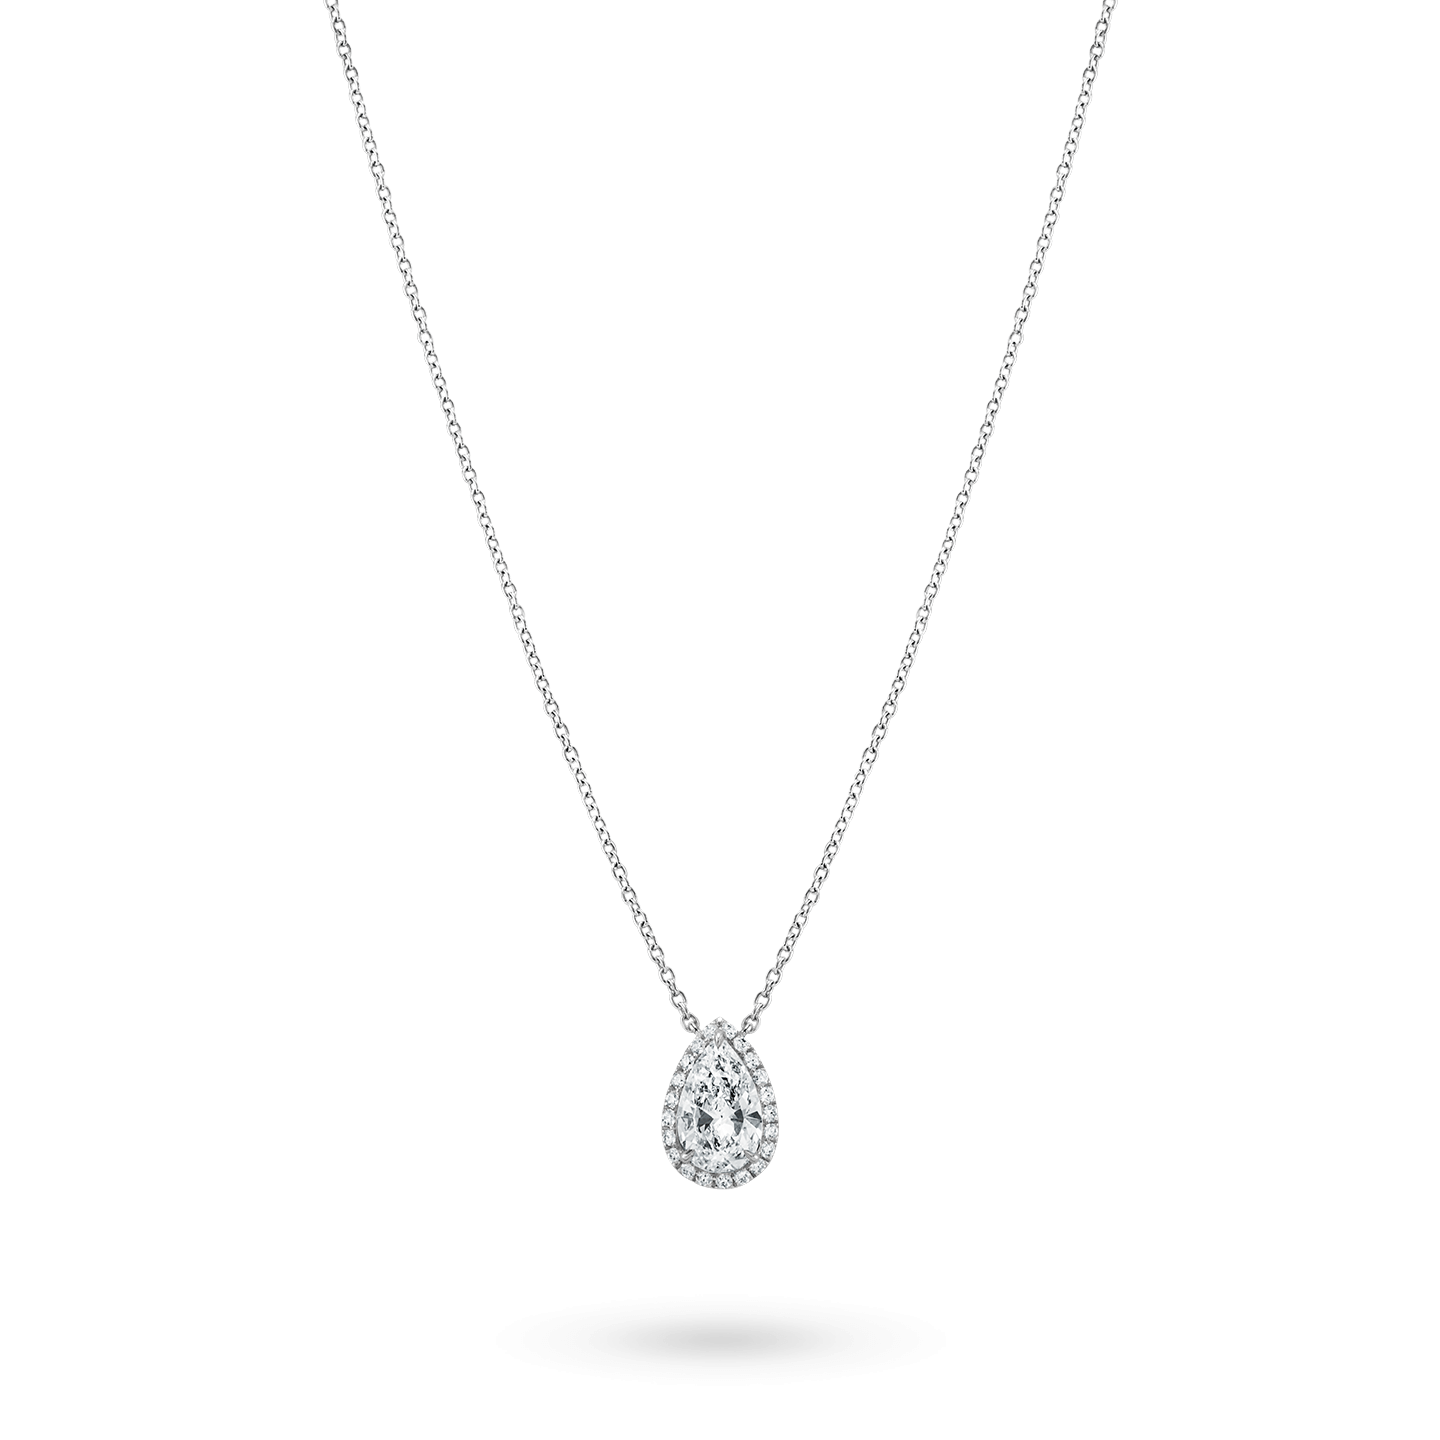 Pear-Shaped Diamond Micropavé Pendant, Product Image 2